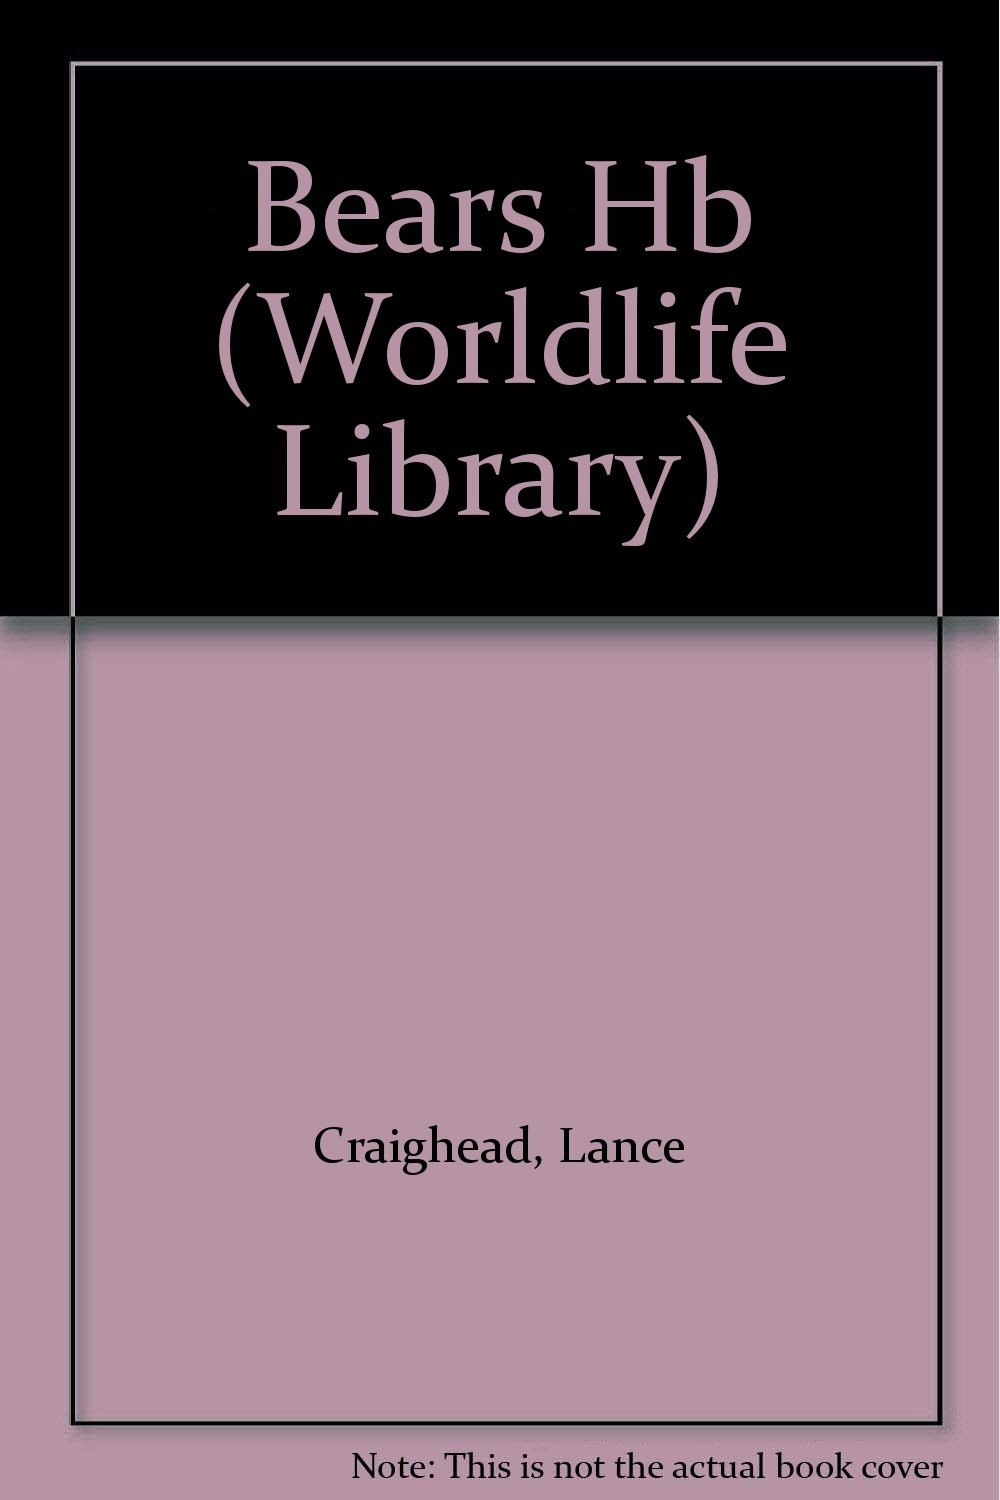 Bears (Worldlife Library) pdf